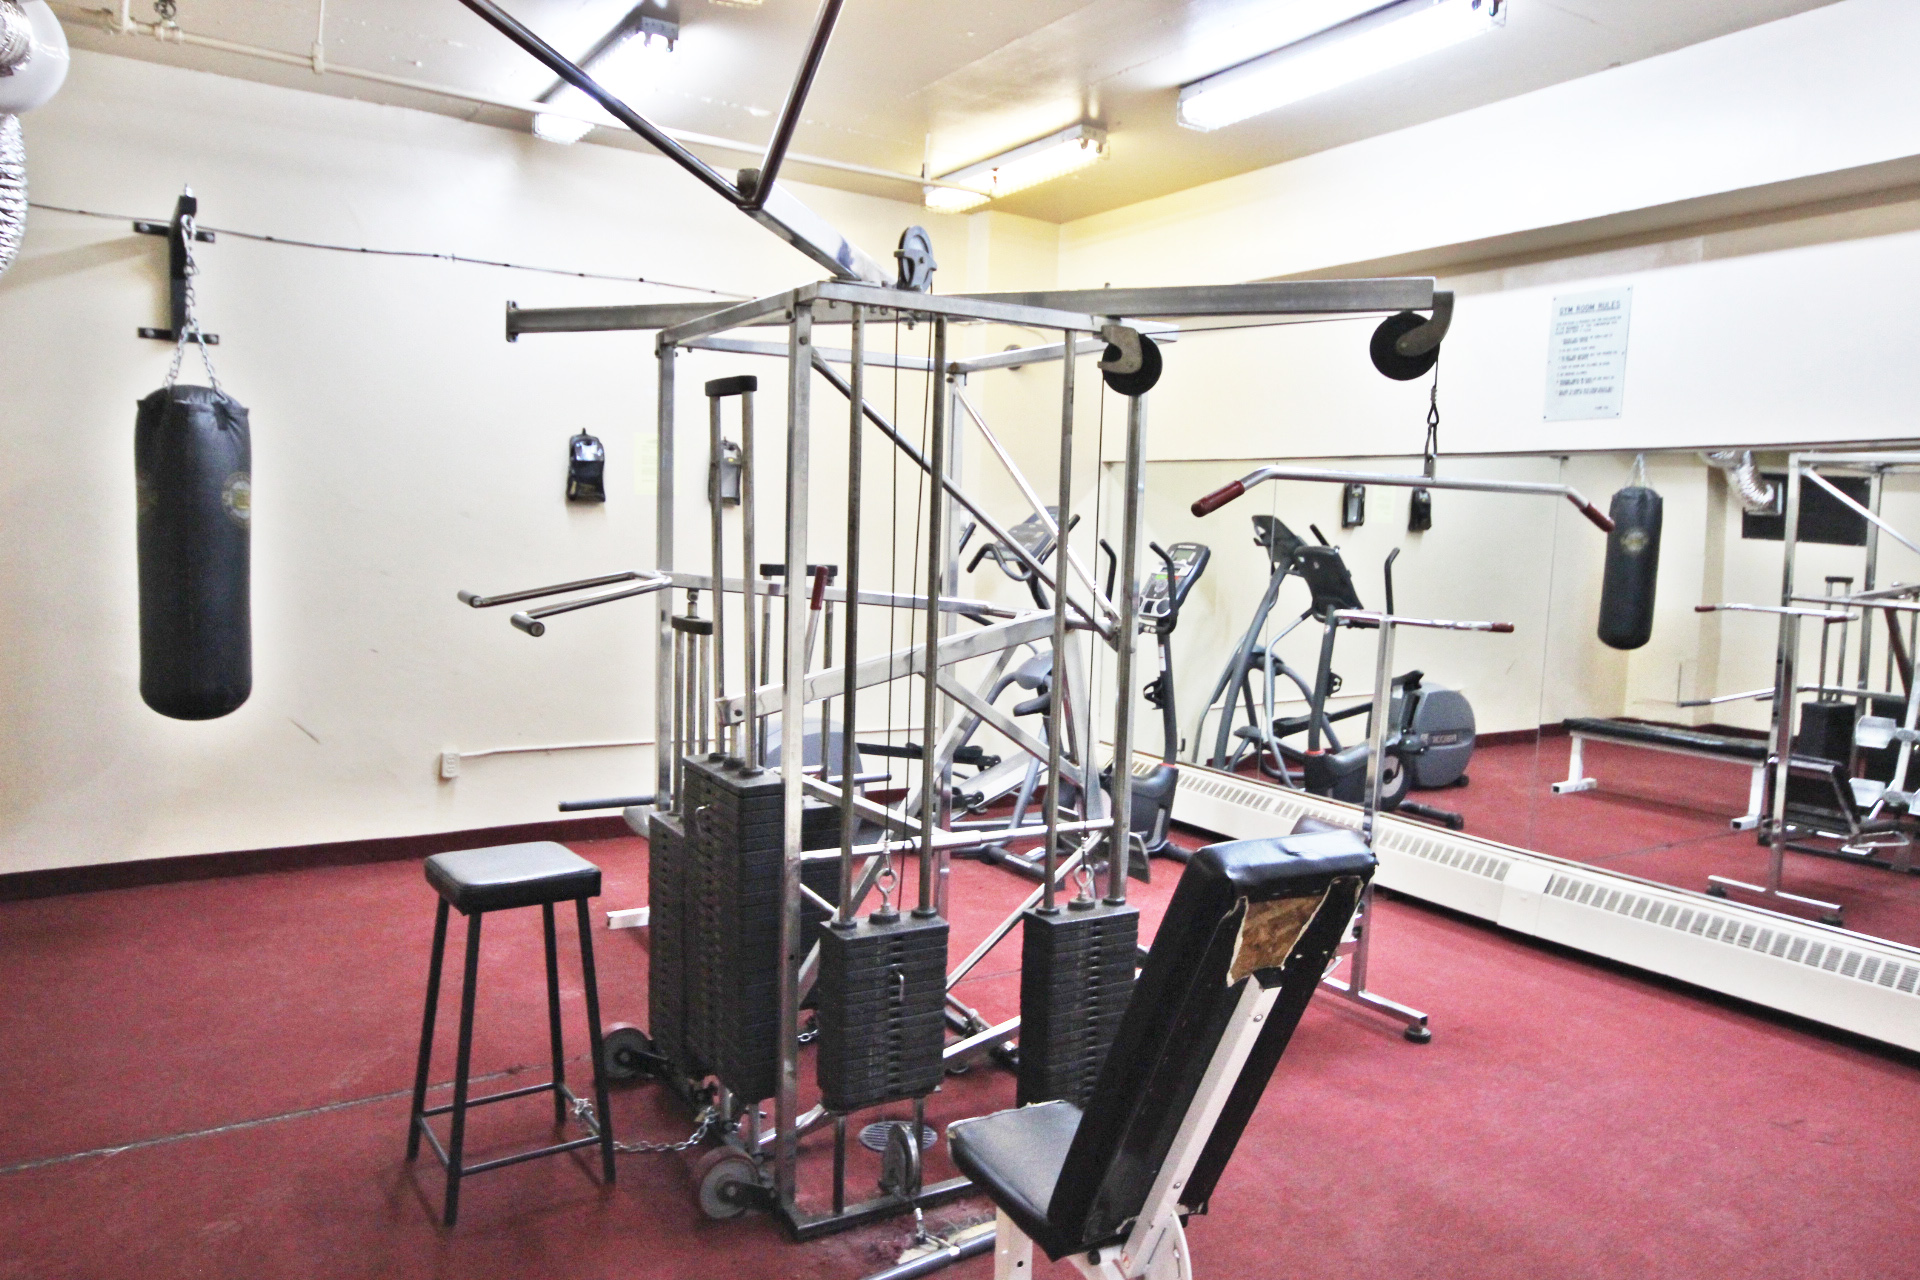 Sold in 2 days for 100 of asking price 100 leeward for Cost of building a gym